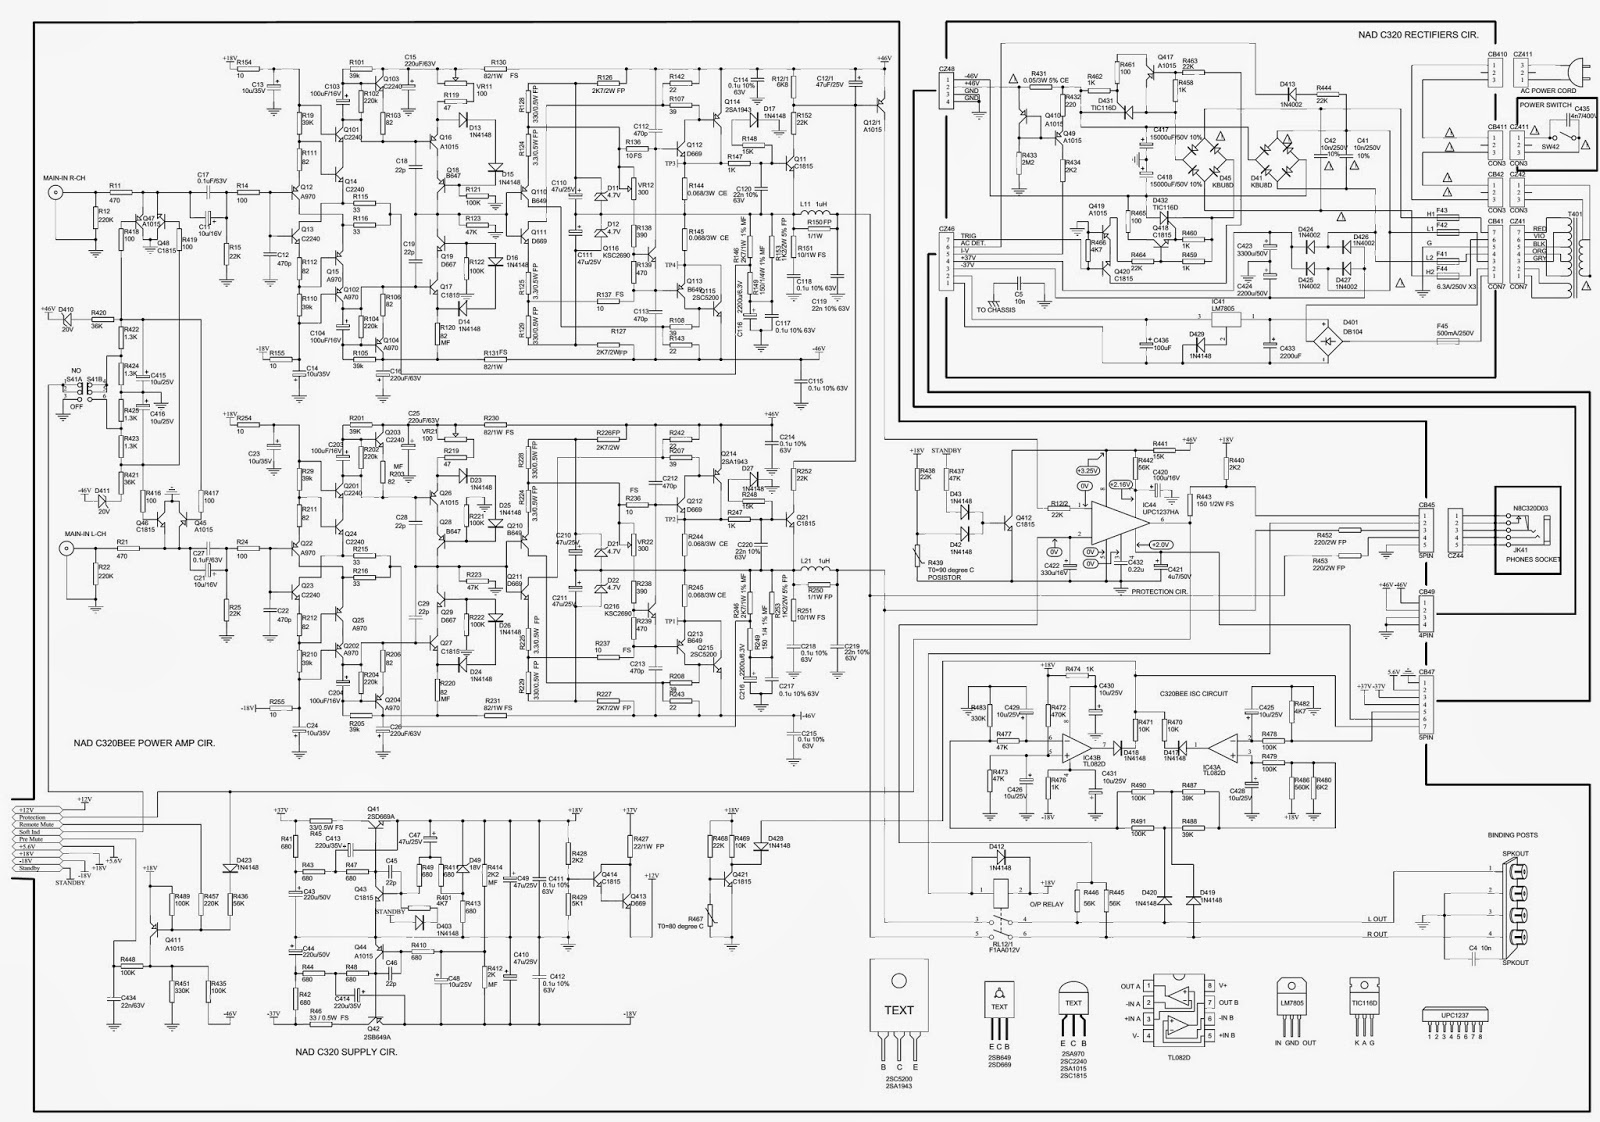 nad c-320 - power amp schematic  circuit diagram